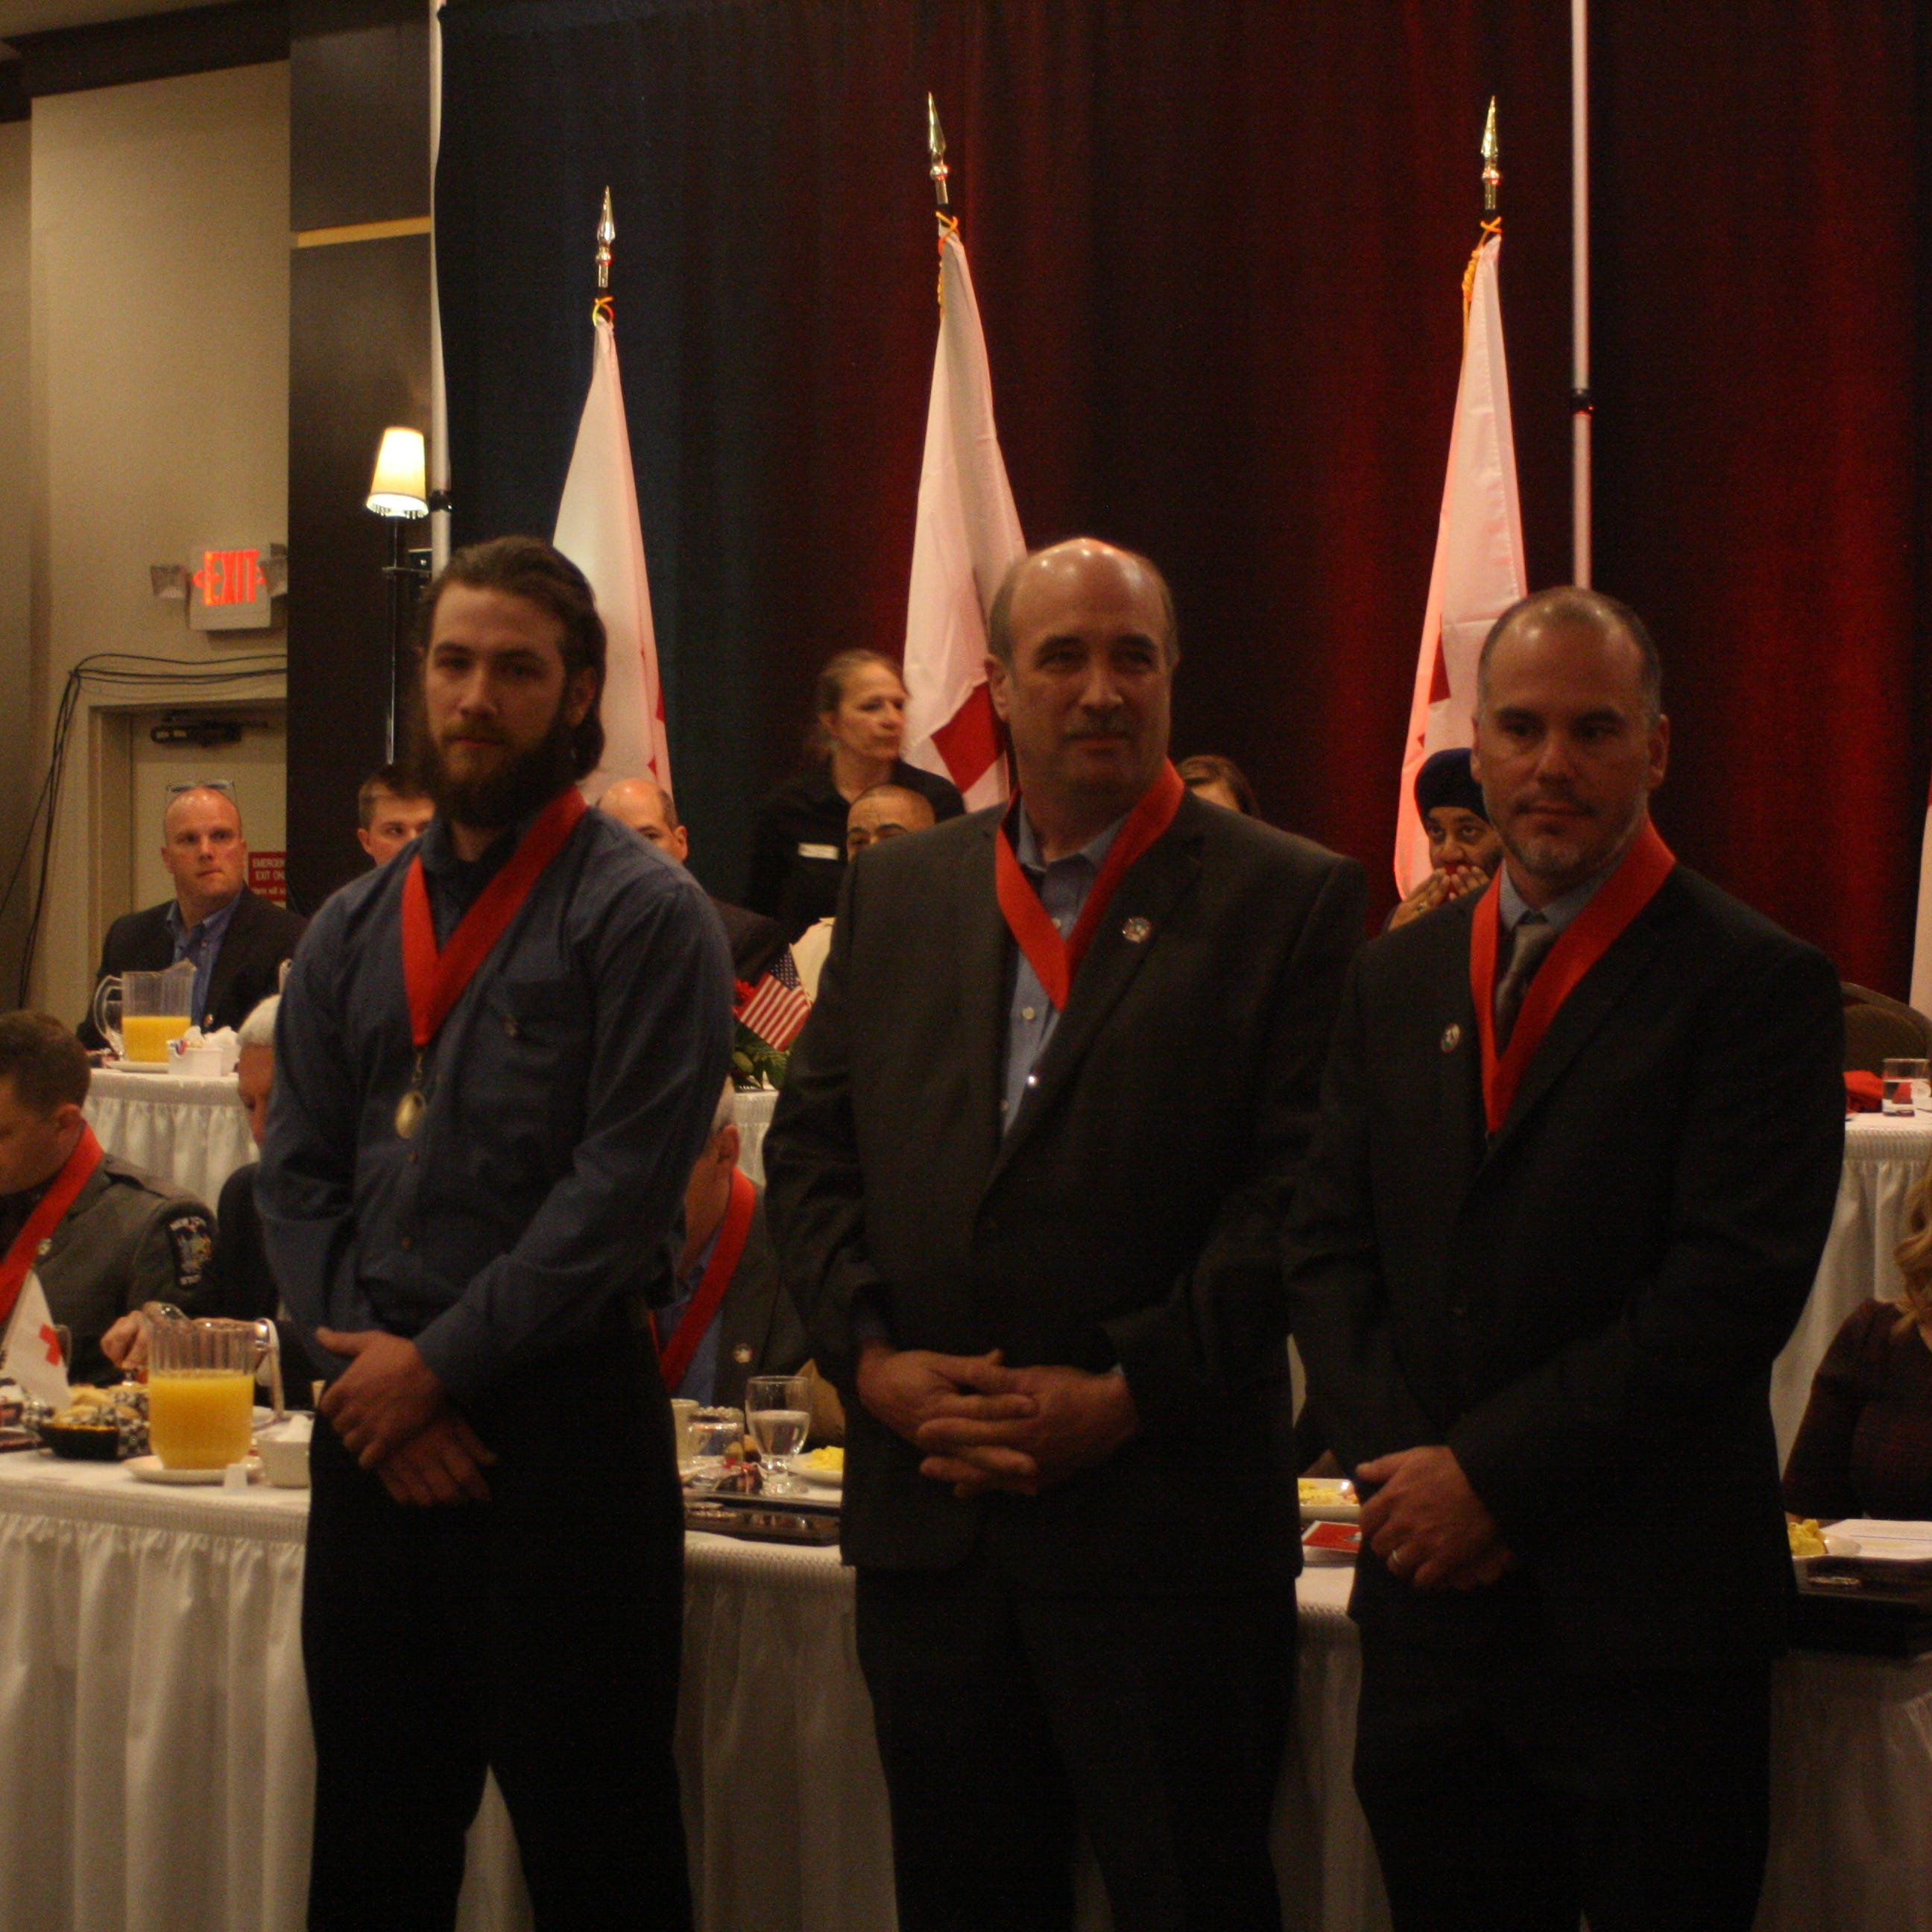 Town of Caroline residents honored as Red Cross 'Real Heroes' for saving missing skiers